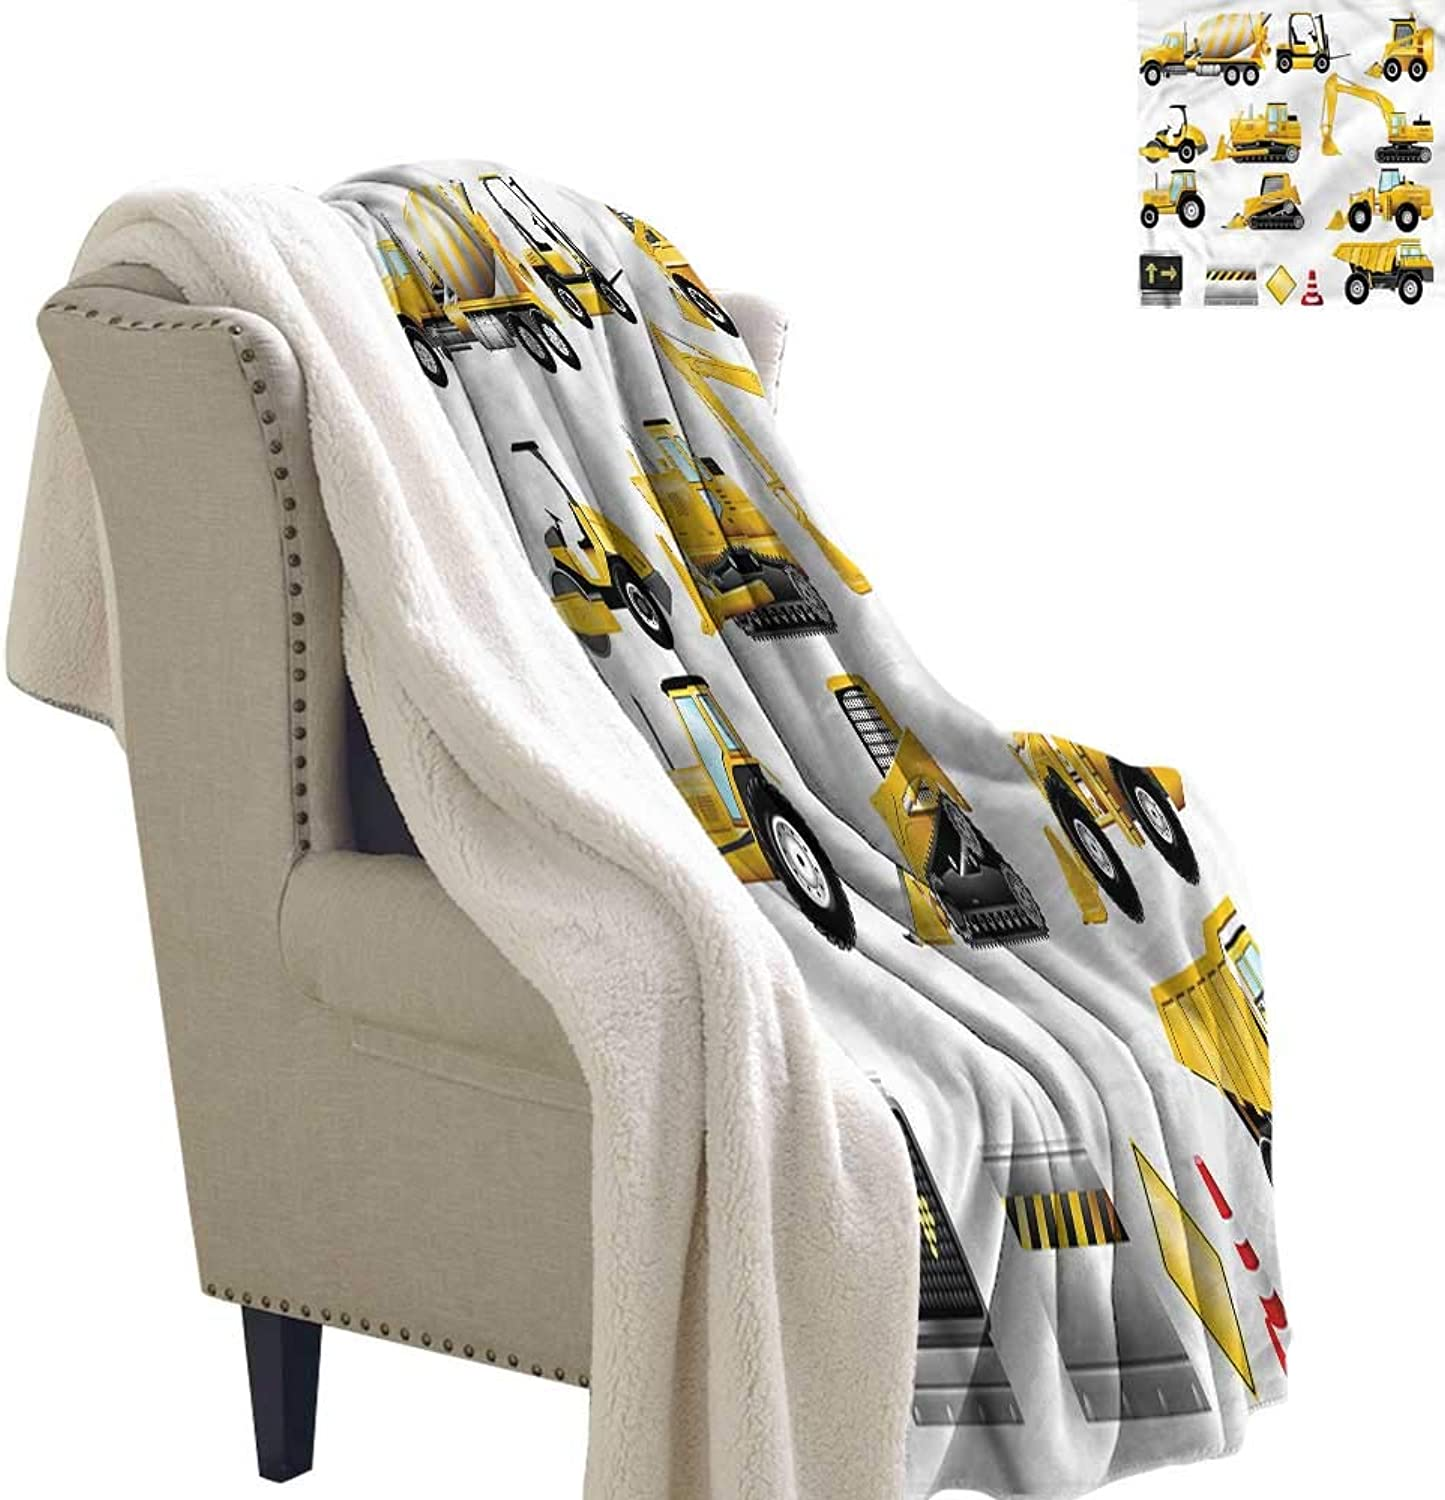 AndyTours Travel Blanket Boys Yellow Construction Site Reversible Blanket for Bed and Couch W59 x L31